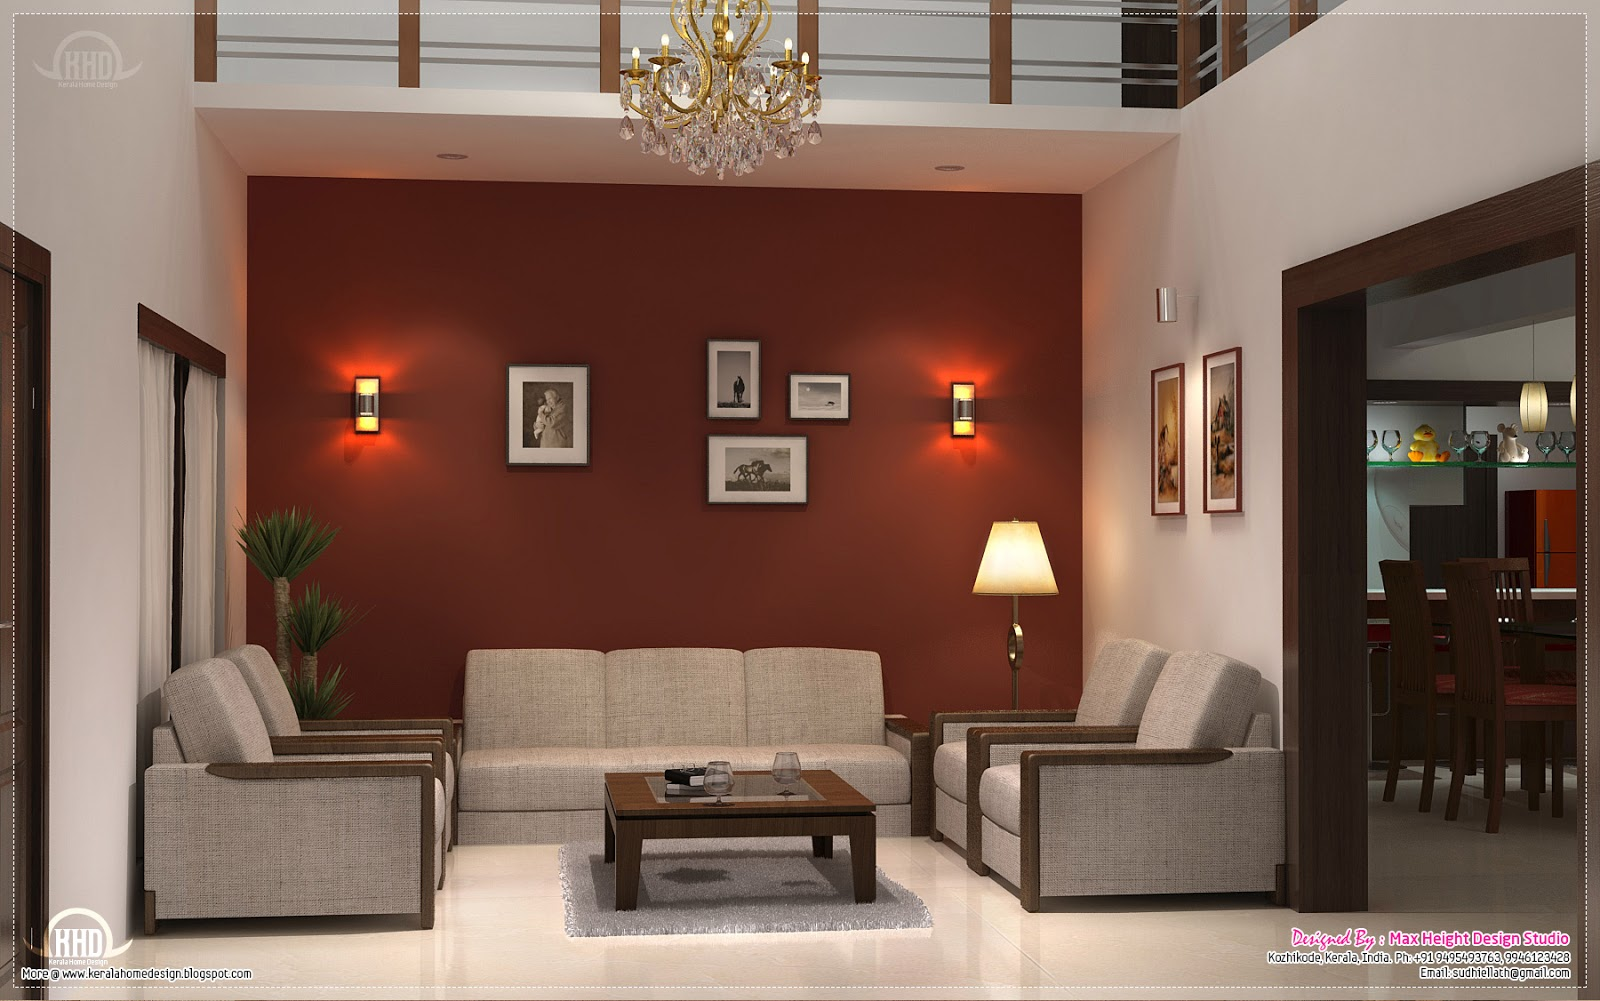 Home interior design ideas home kerala plans for New model house interior design